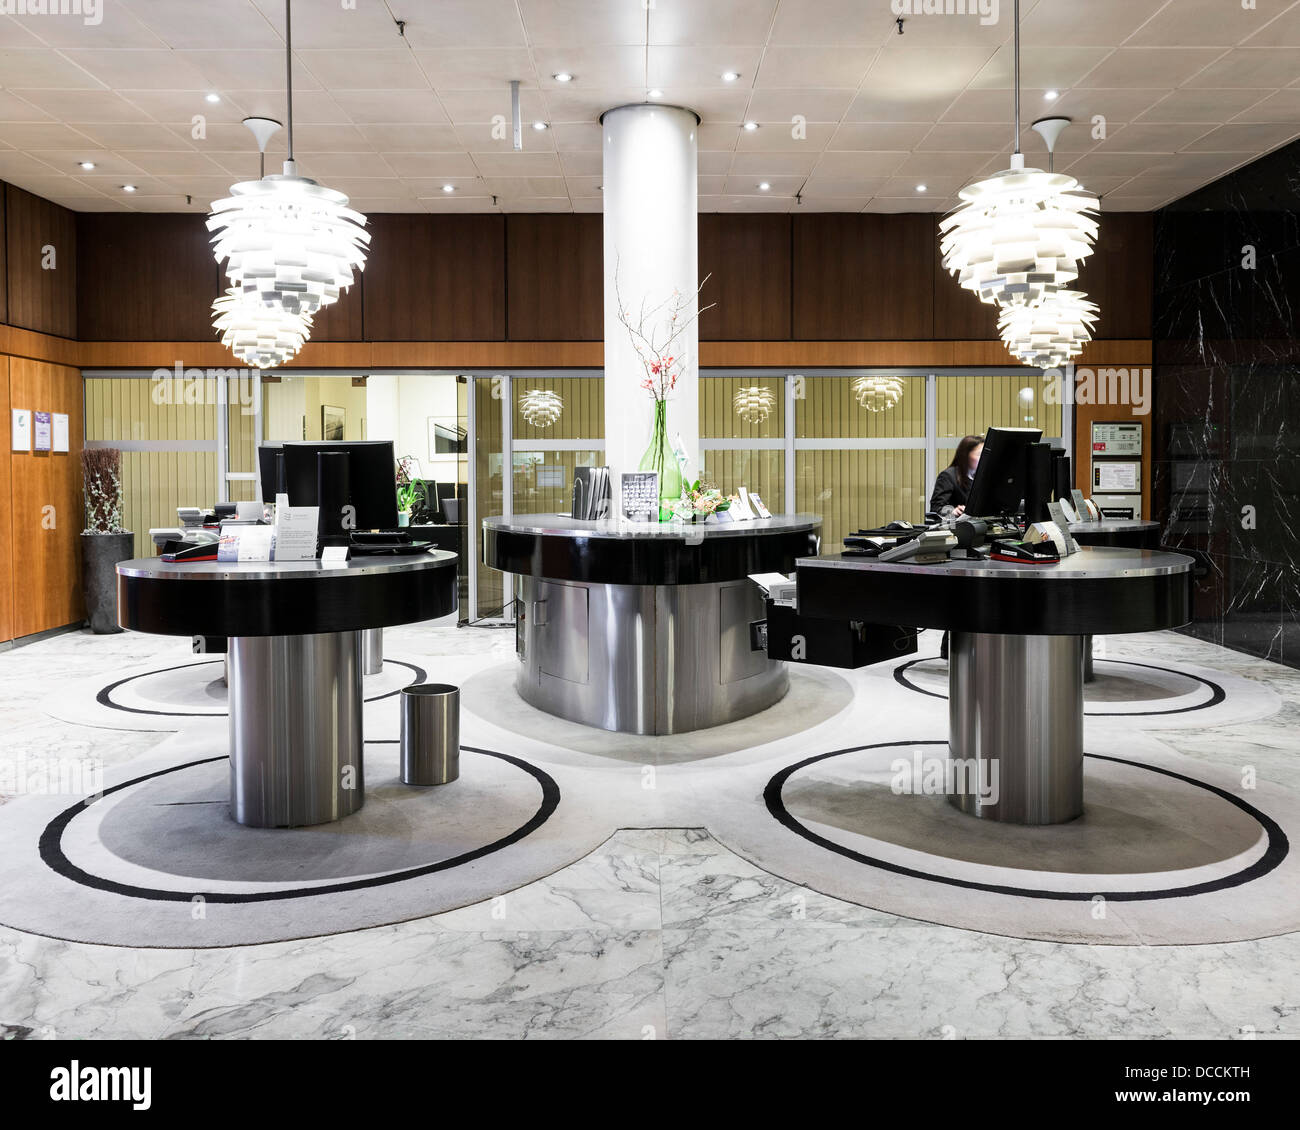 SAS Royal Hotel, Copenhagen, Denmark. Architect: Arne Jacobsen, 1960. Reception desk. Stock Photo